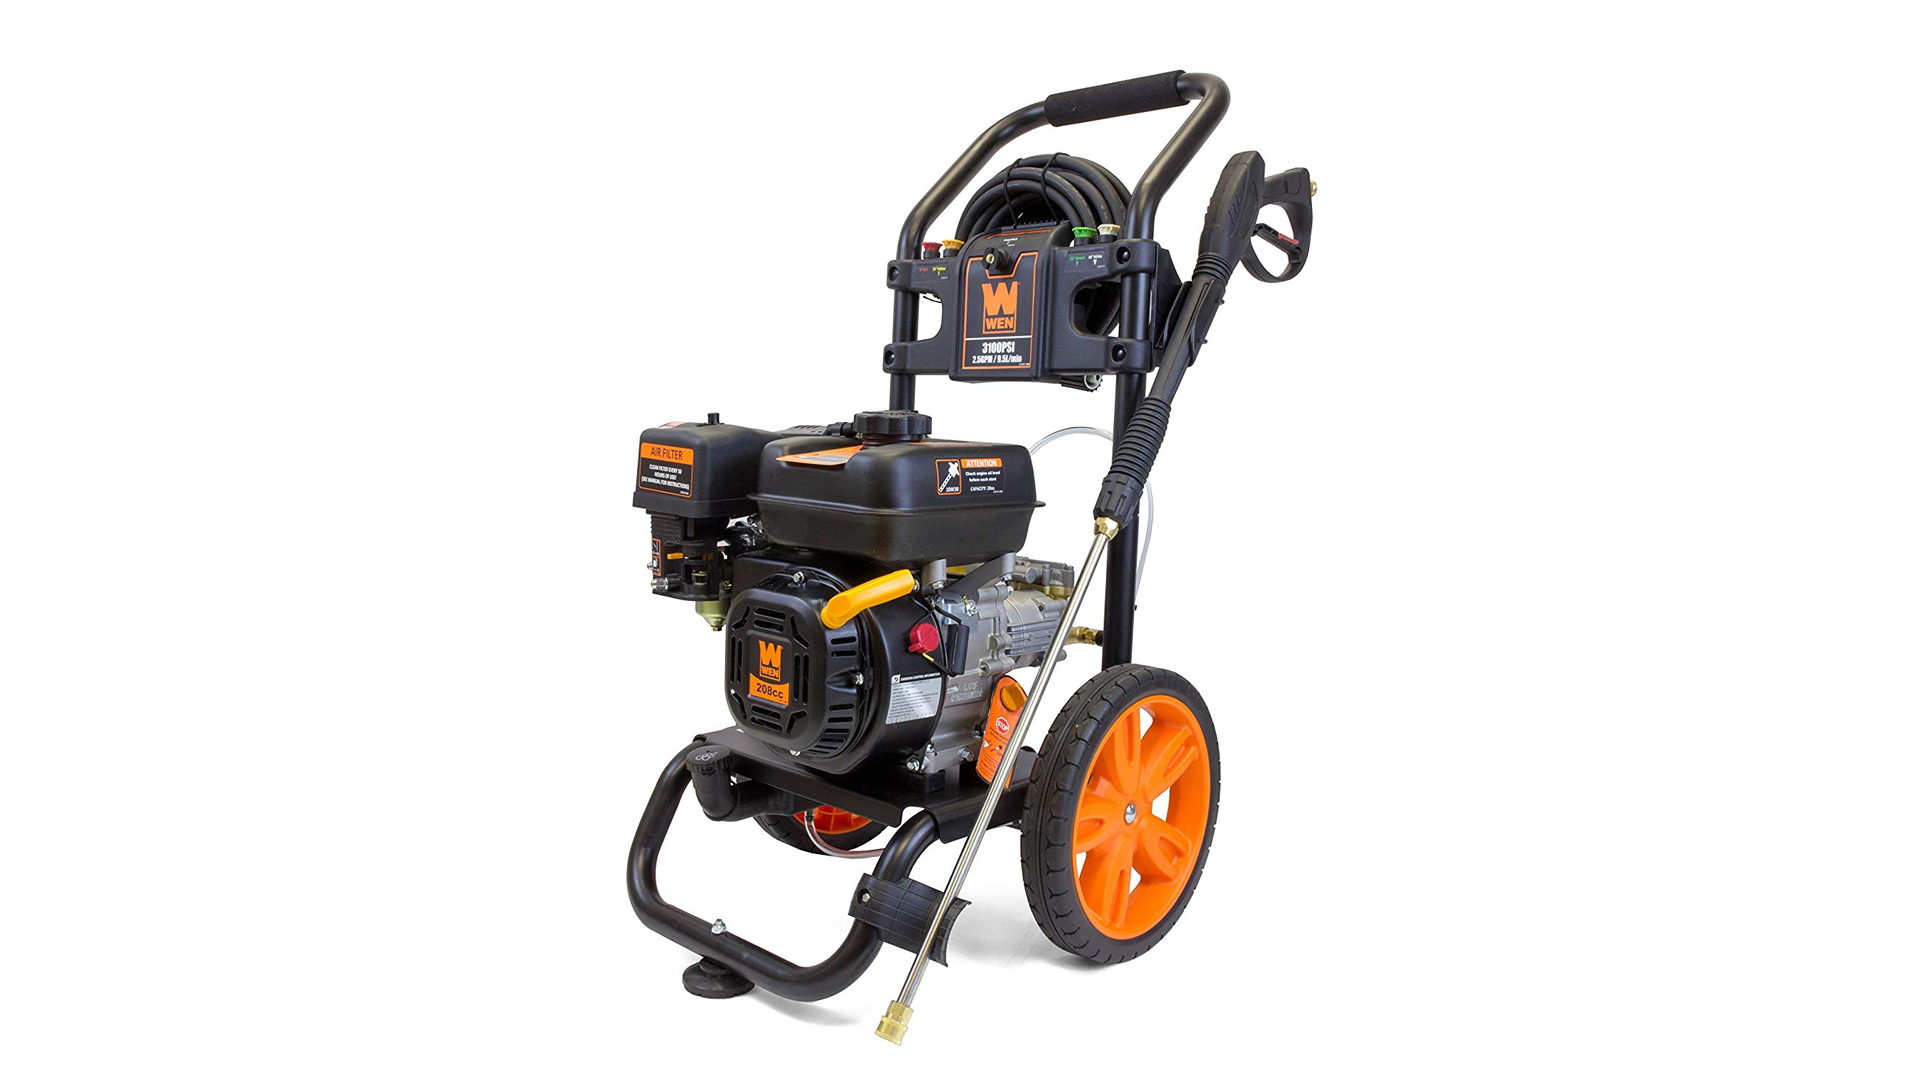 the WEN PW3100 Gas Power Washer